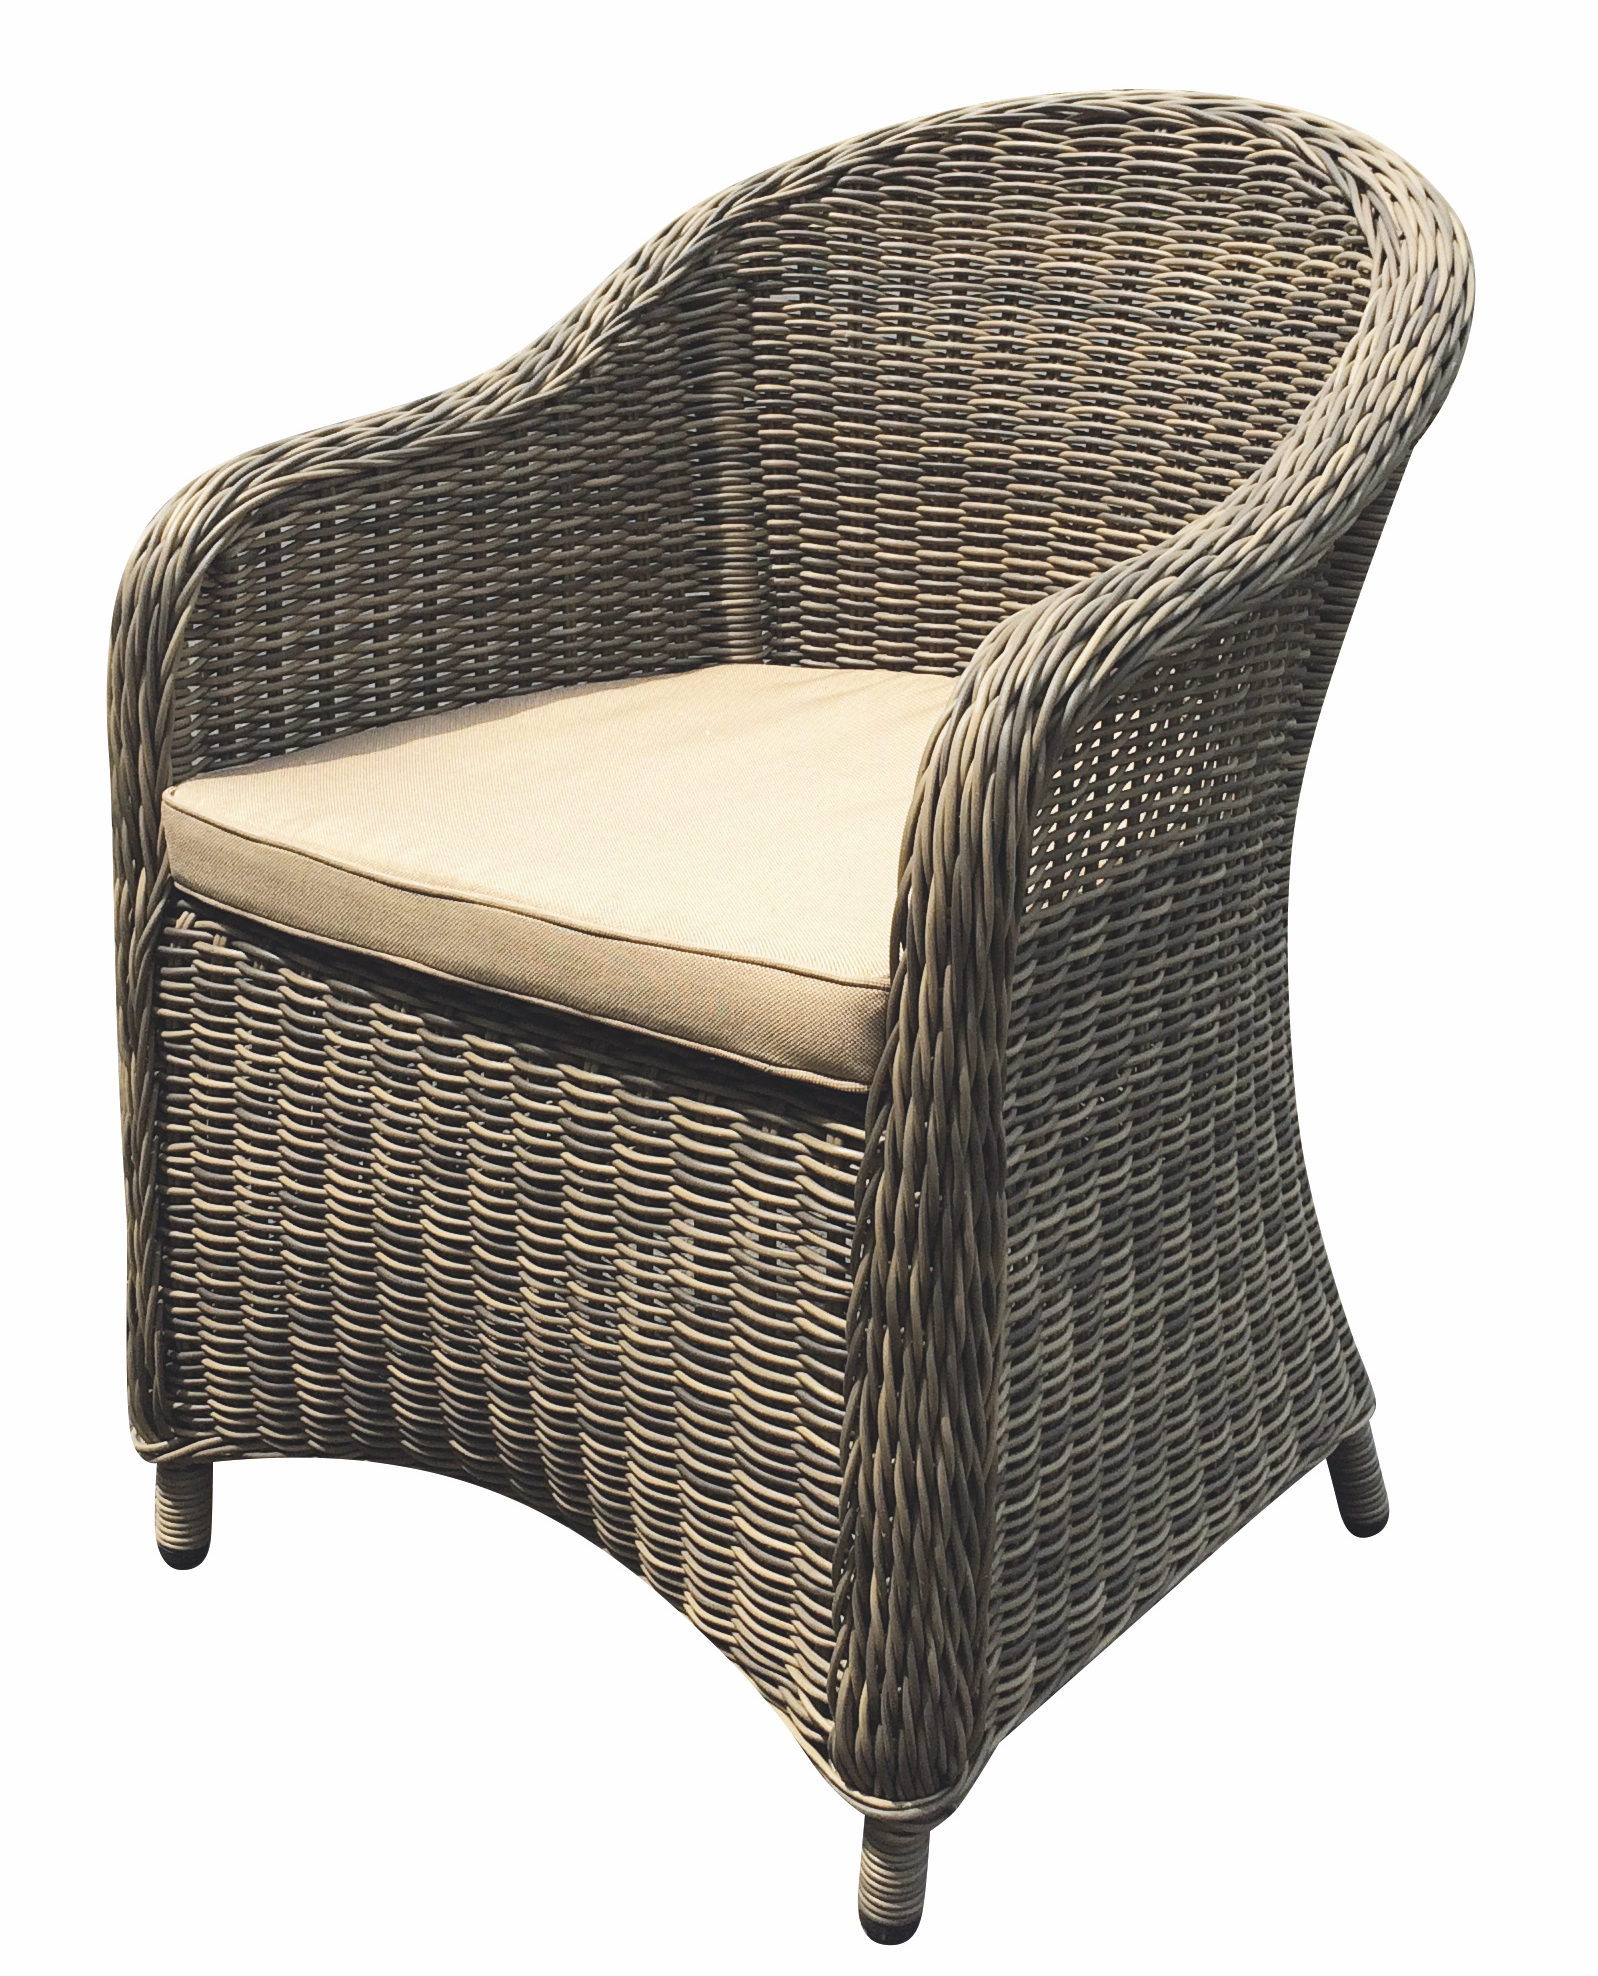 Modern Aluminum Wicker Dining Chair Contract Furniture